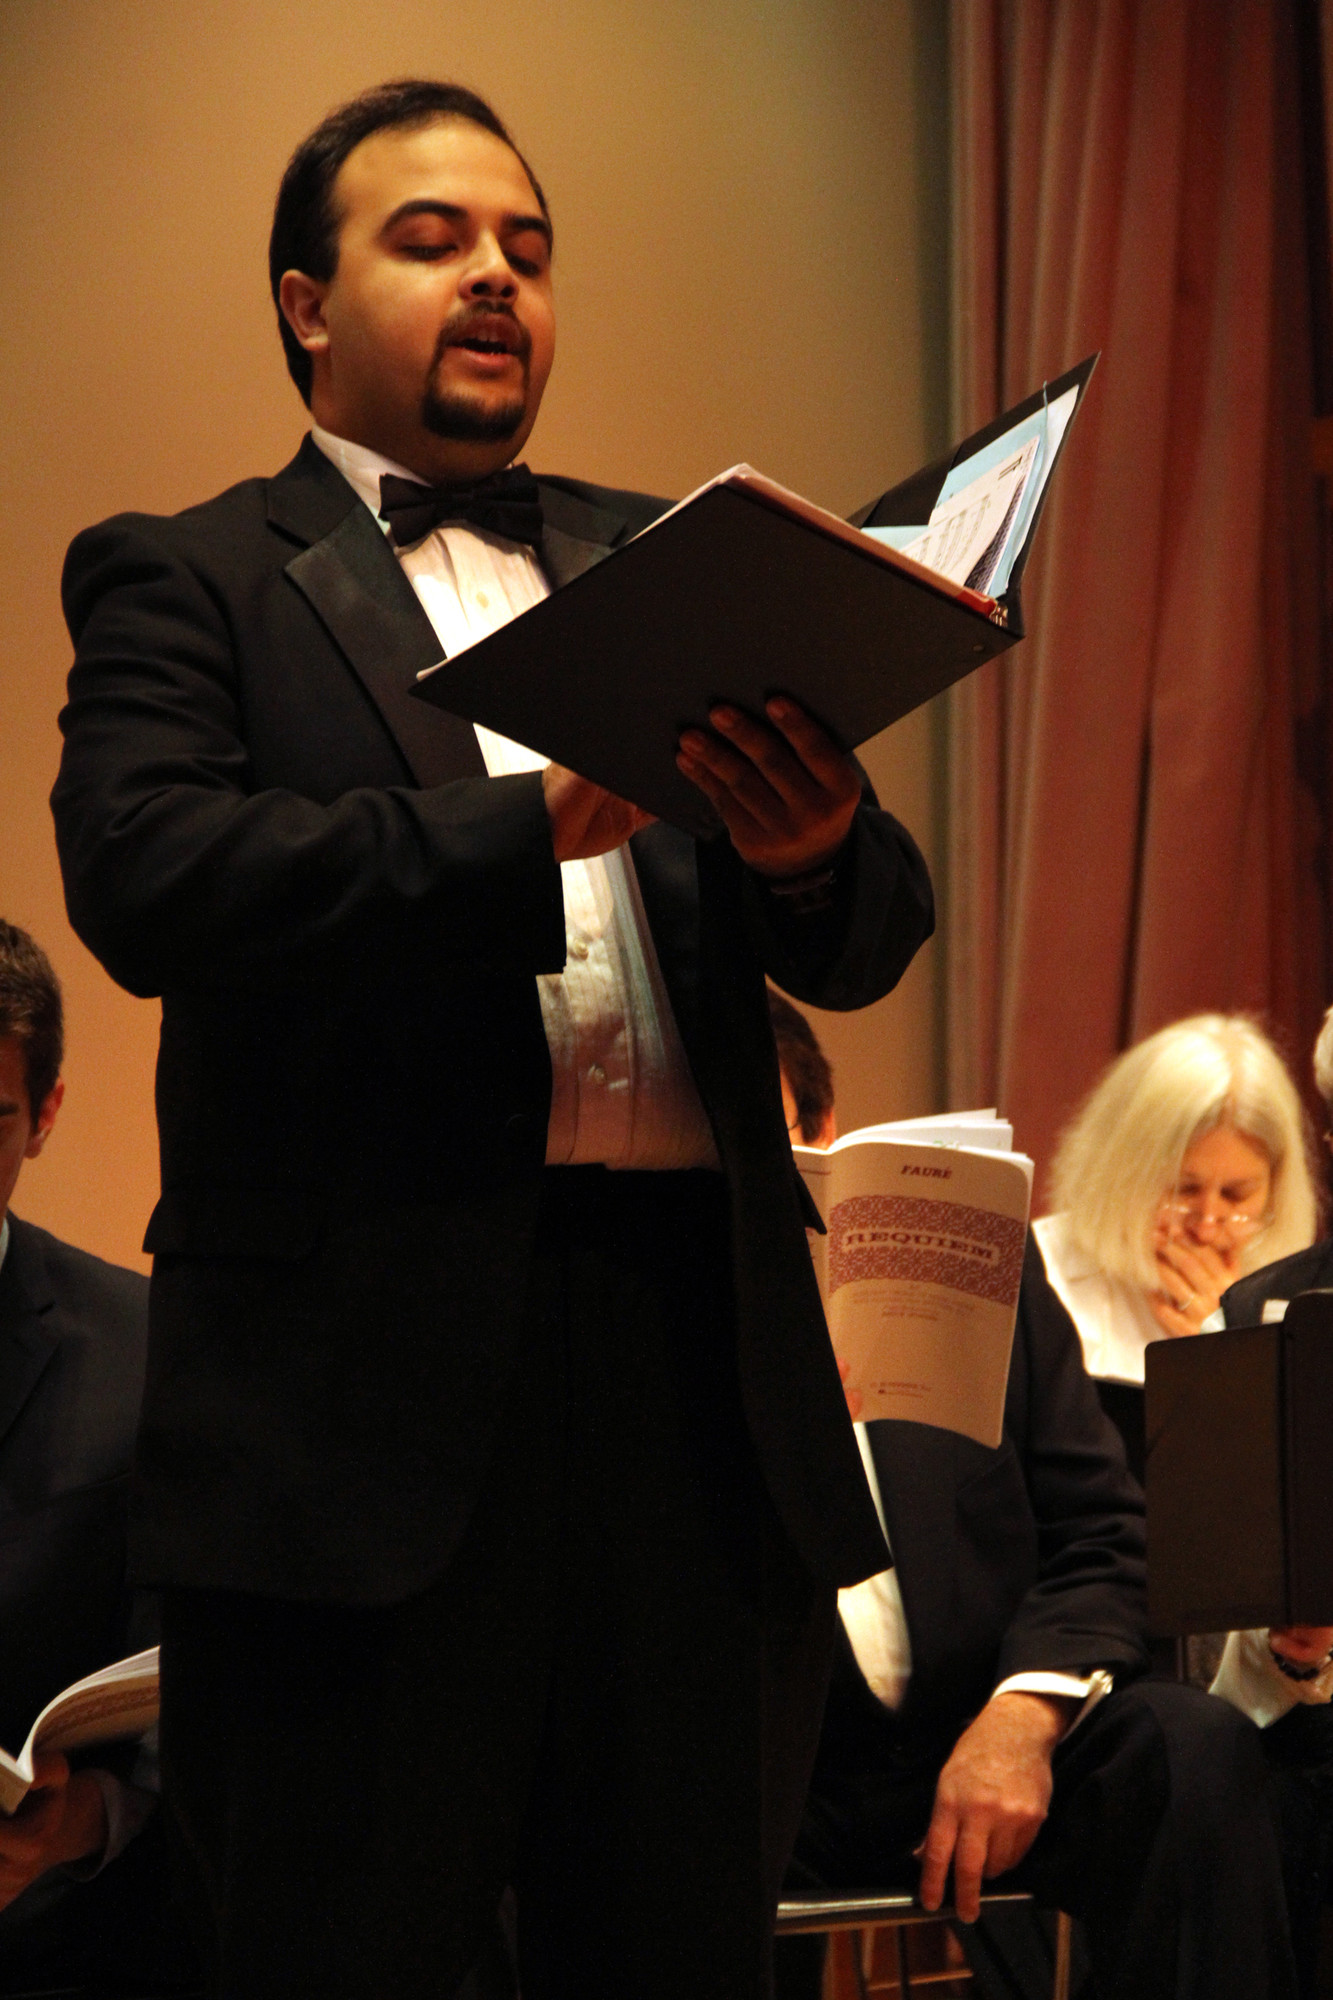 Tenor Nobeen Loqman was one of the few guest singers that joined the United Choral Society for its performance at the Hewlett-Woodmere Public Library.